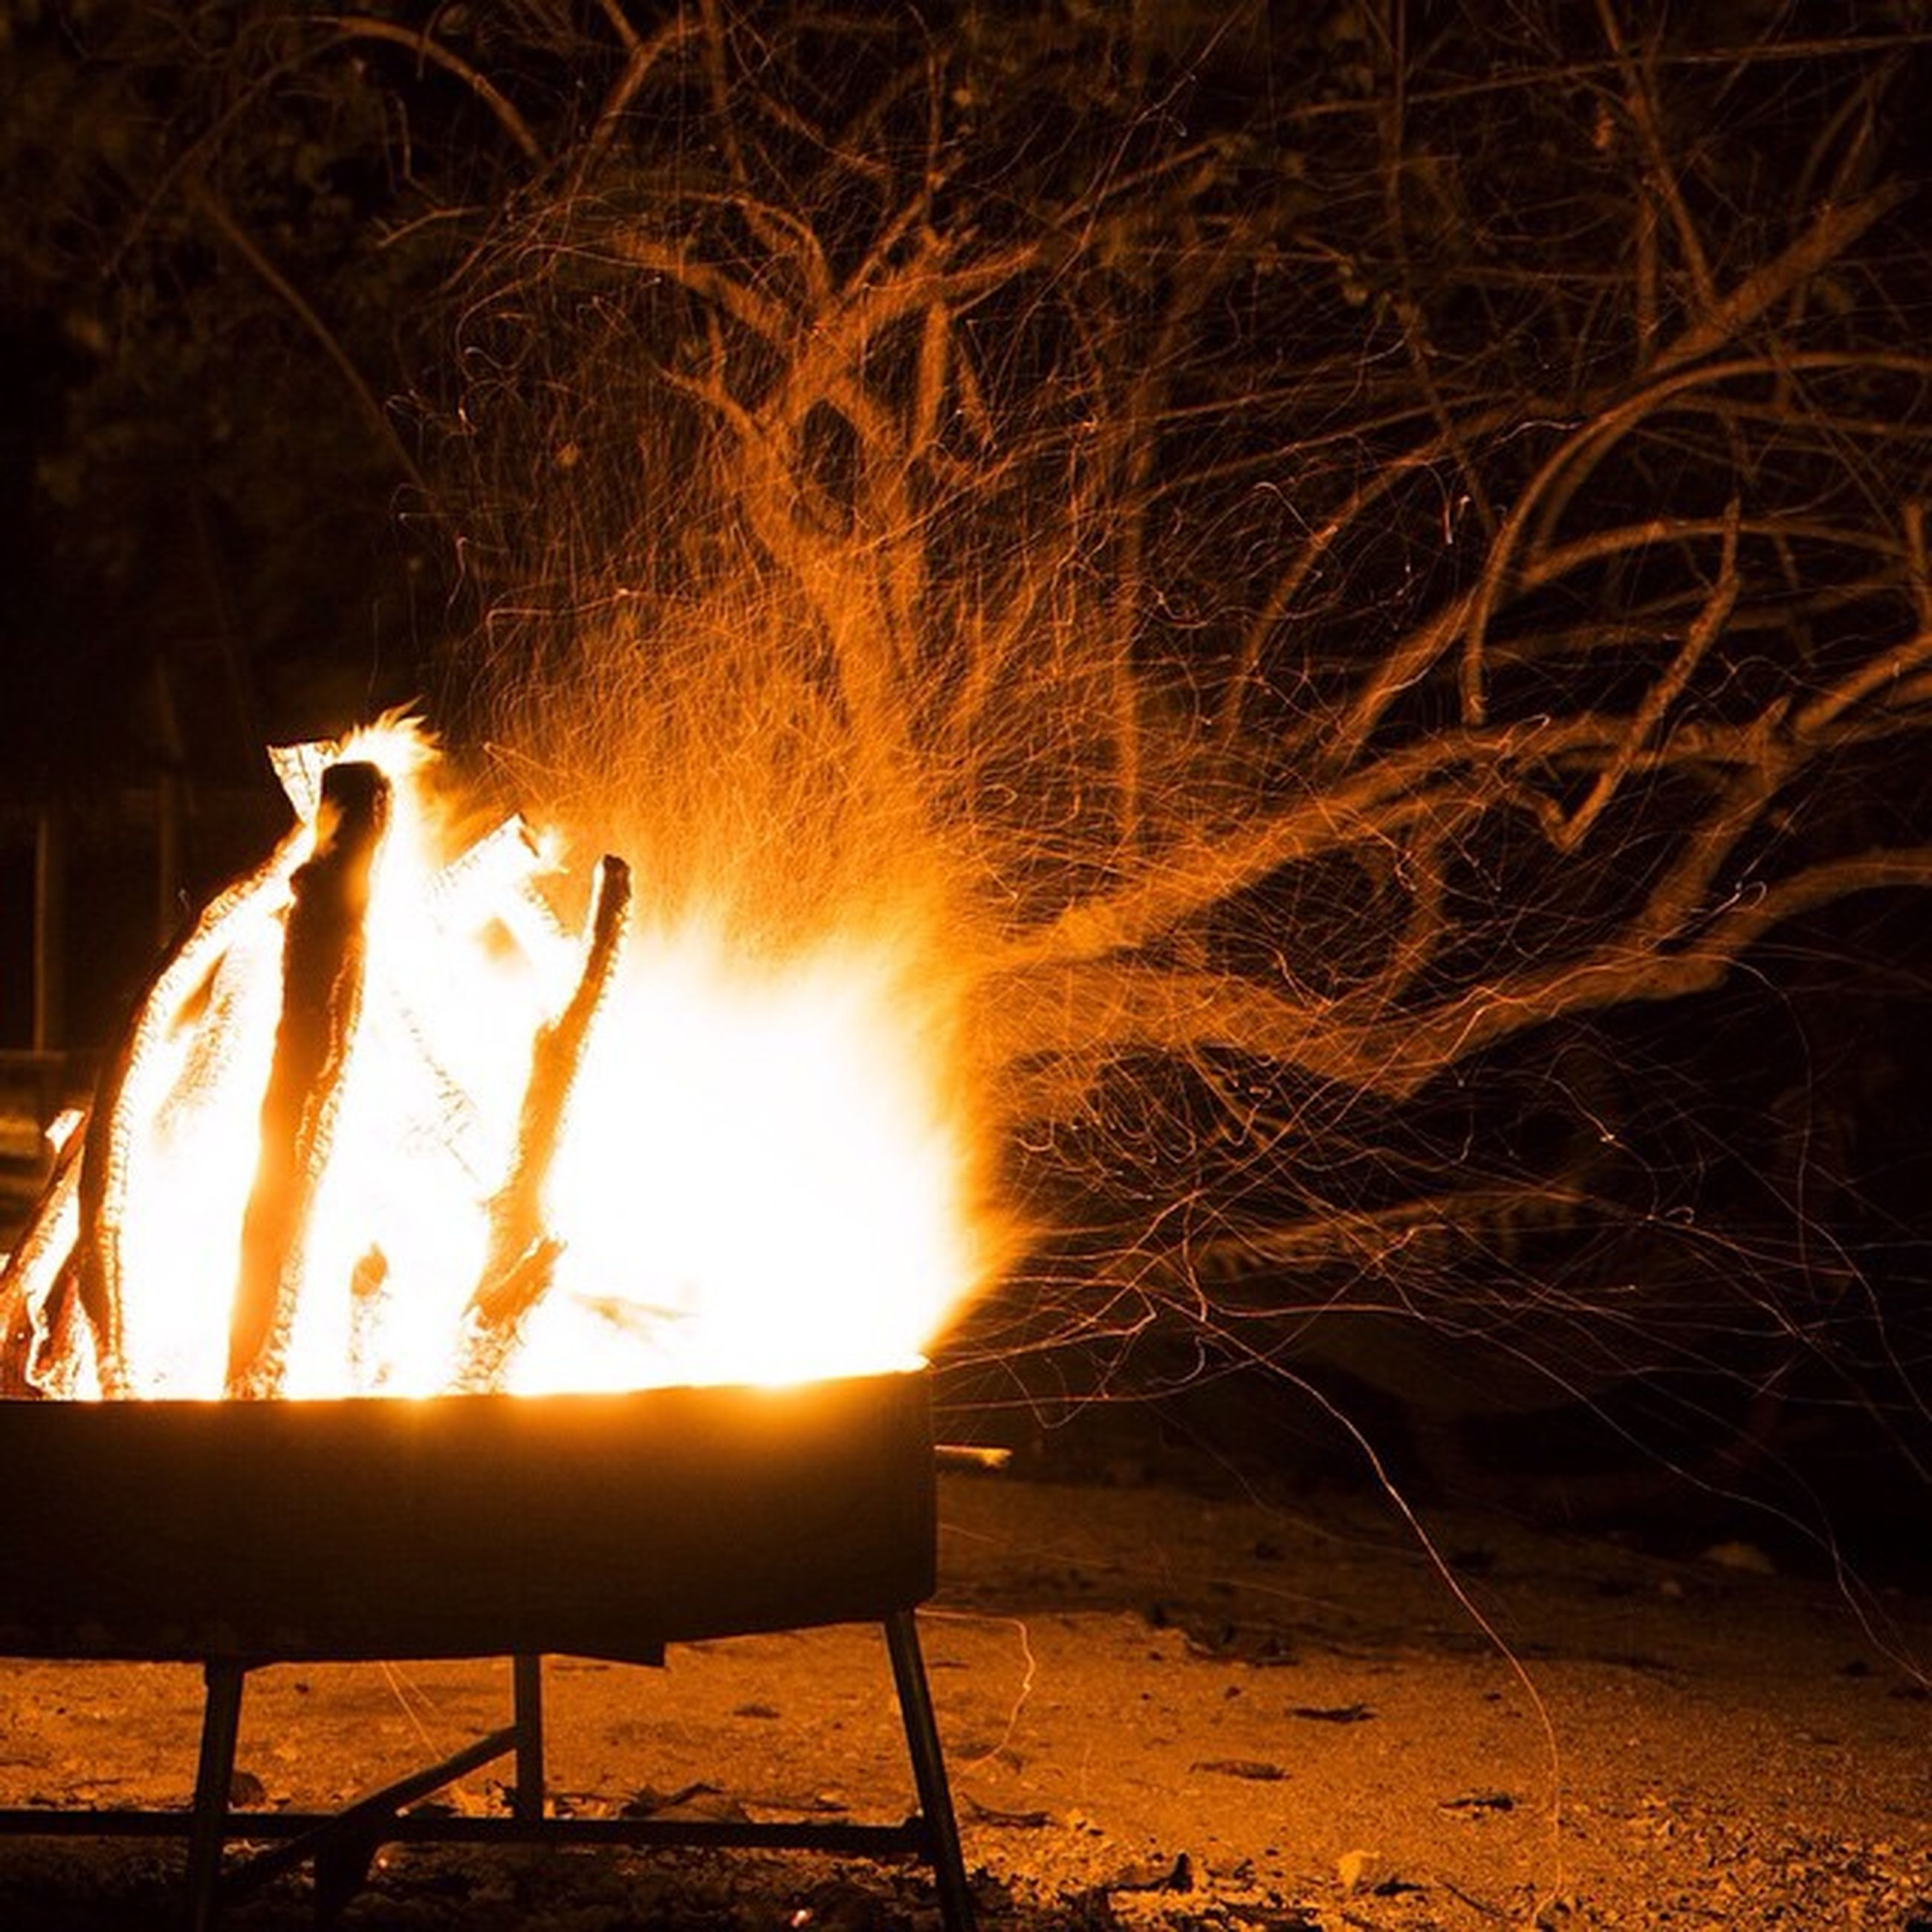 night, glowing, burning, illuminated, fire - natural phenomenon, flame, heat - temperature, sunlight, dark, sun, wood - material, light - natural phenomenon, nature, outdoors, no people, silhouette, bare tree, close-up, tranquility, sunset